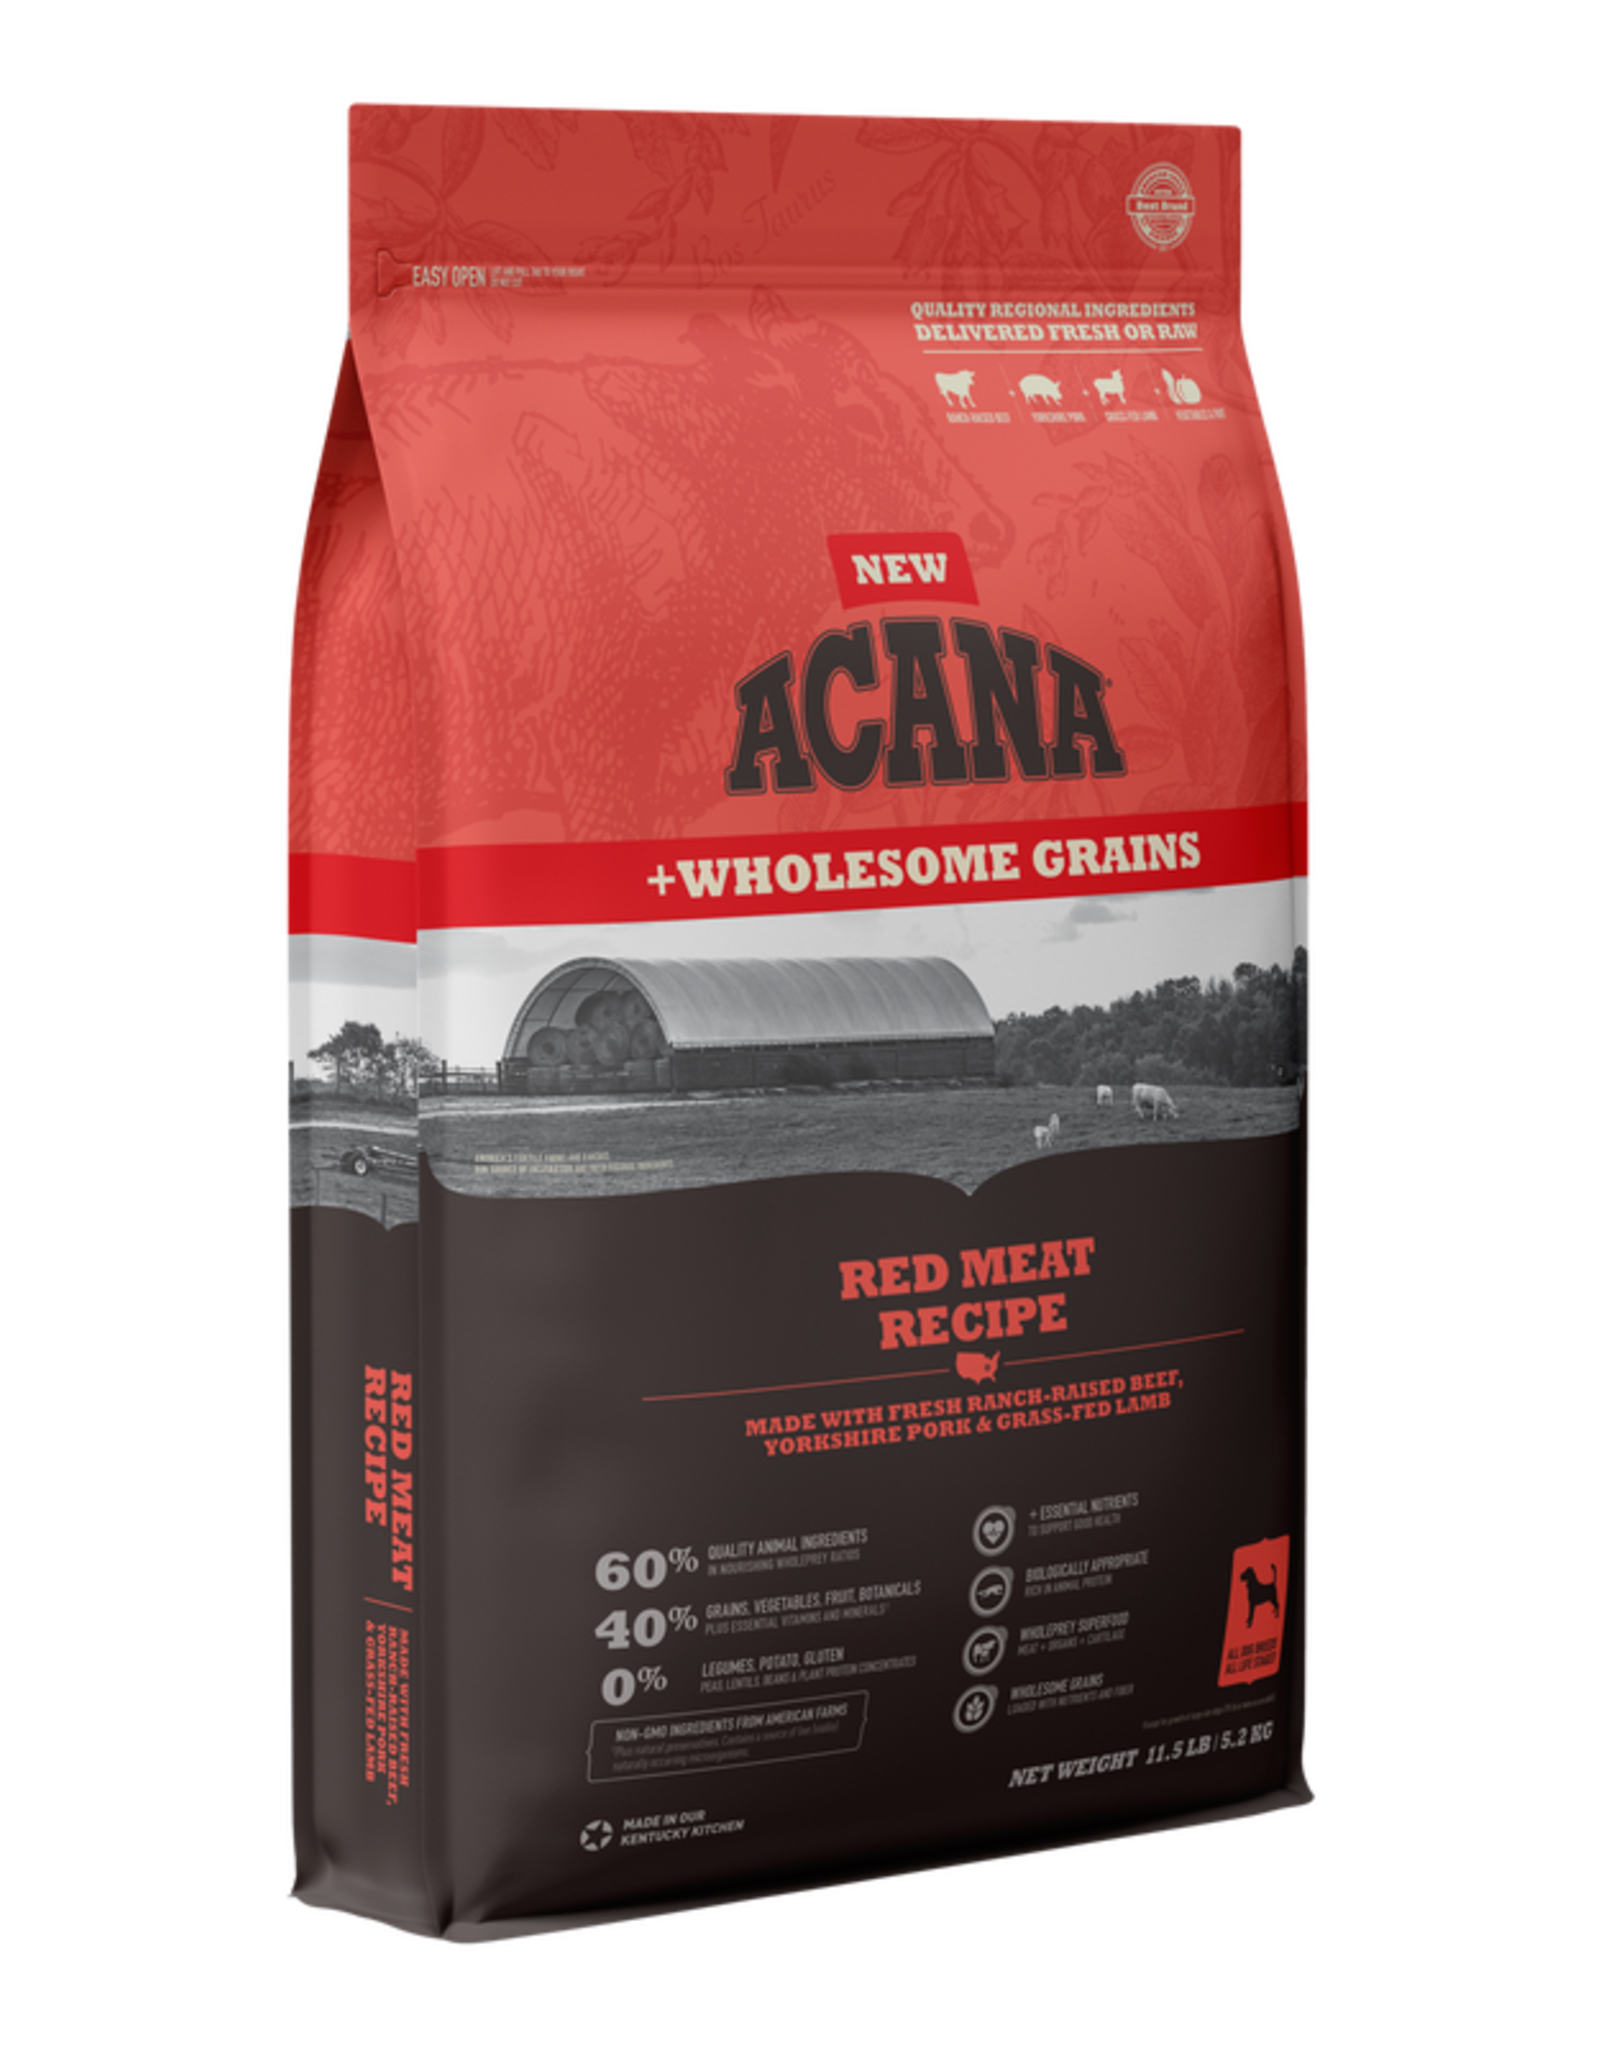 Acana Acana - Red Meat Recipe with Wholesome Grains